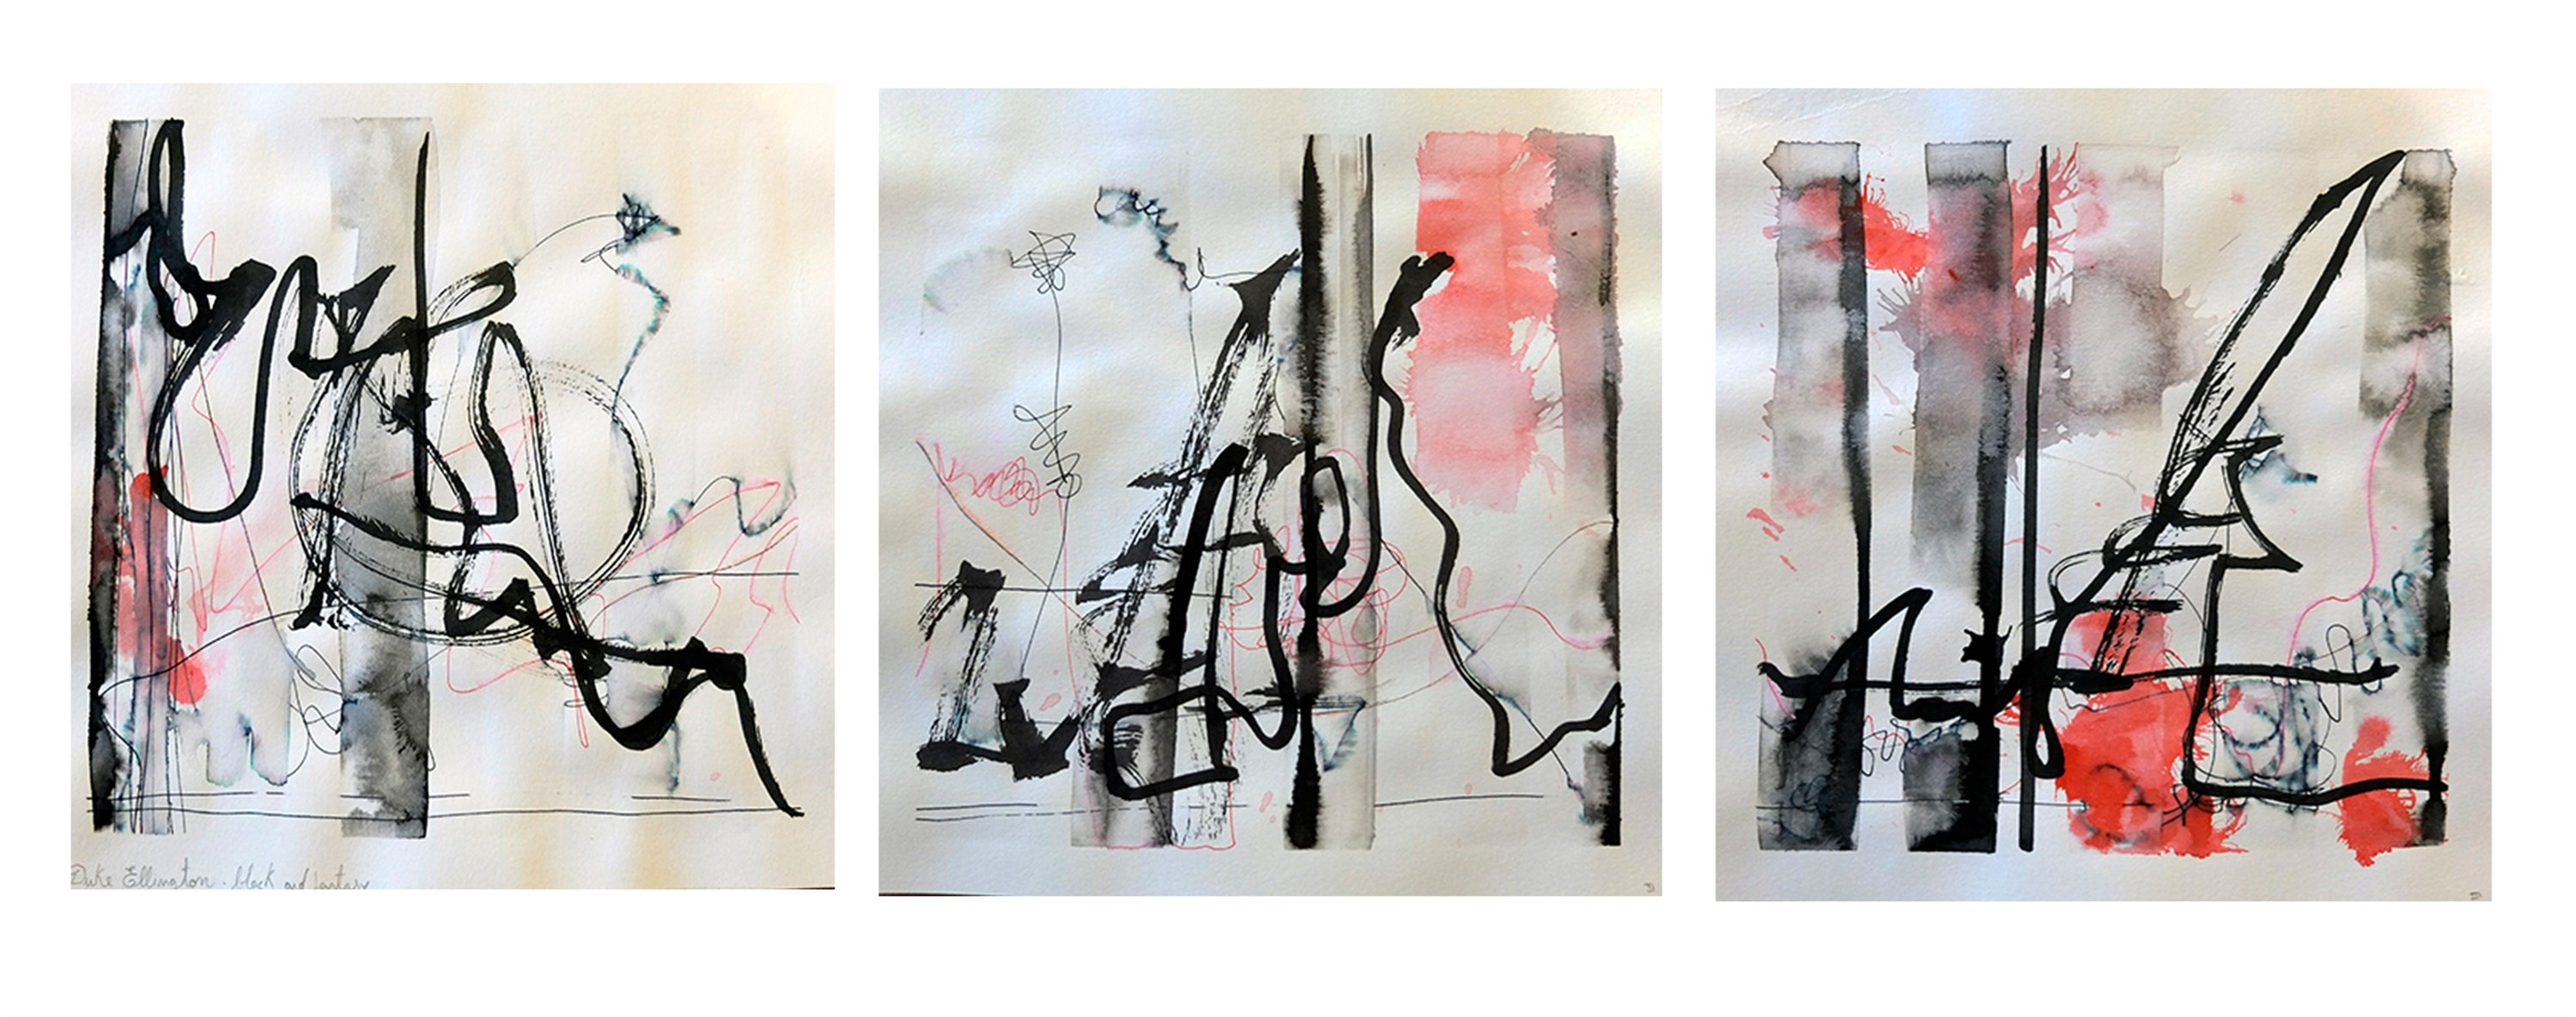 Duke Ellington - Black and Fantasy (I,II,III), Pintura Guache Abstrato original por Mariana Alves